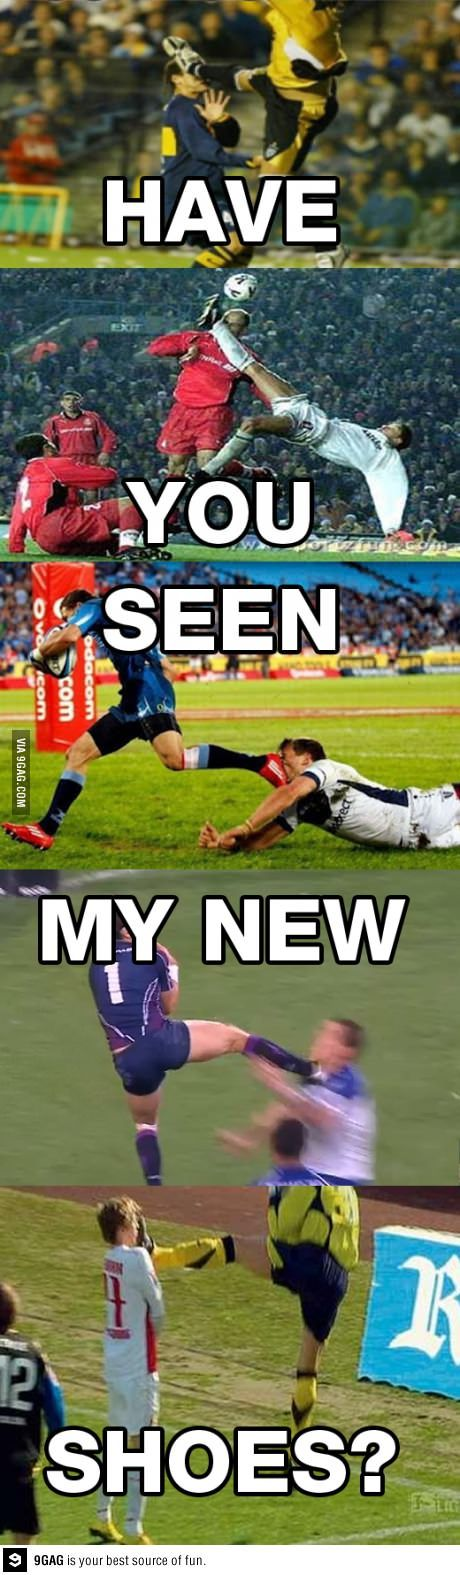 That happens to me all the time I kick a lot of people in the face (in soccer)